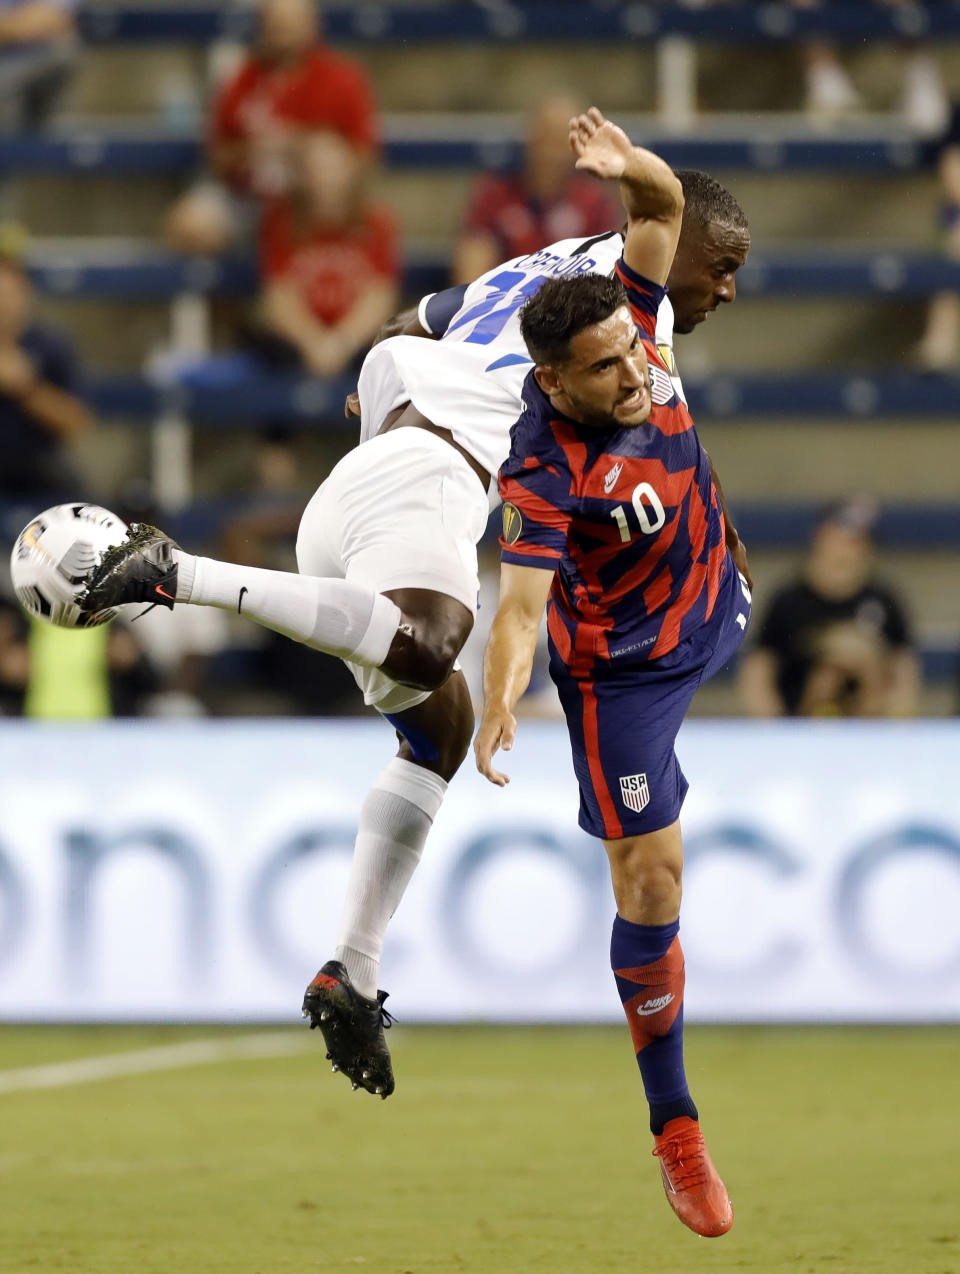 Martinique defender Sebastien Cretinoir (21) and U.S. midfielder Cristian Roldan (10) collide after attempting to head the ball during the first half of a CONCACAF Gold Cup soccer match in Kansas City, Kan., Thursday, July 15, 2021. (AP Photo/Colin E. Braley)